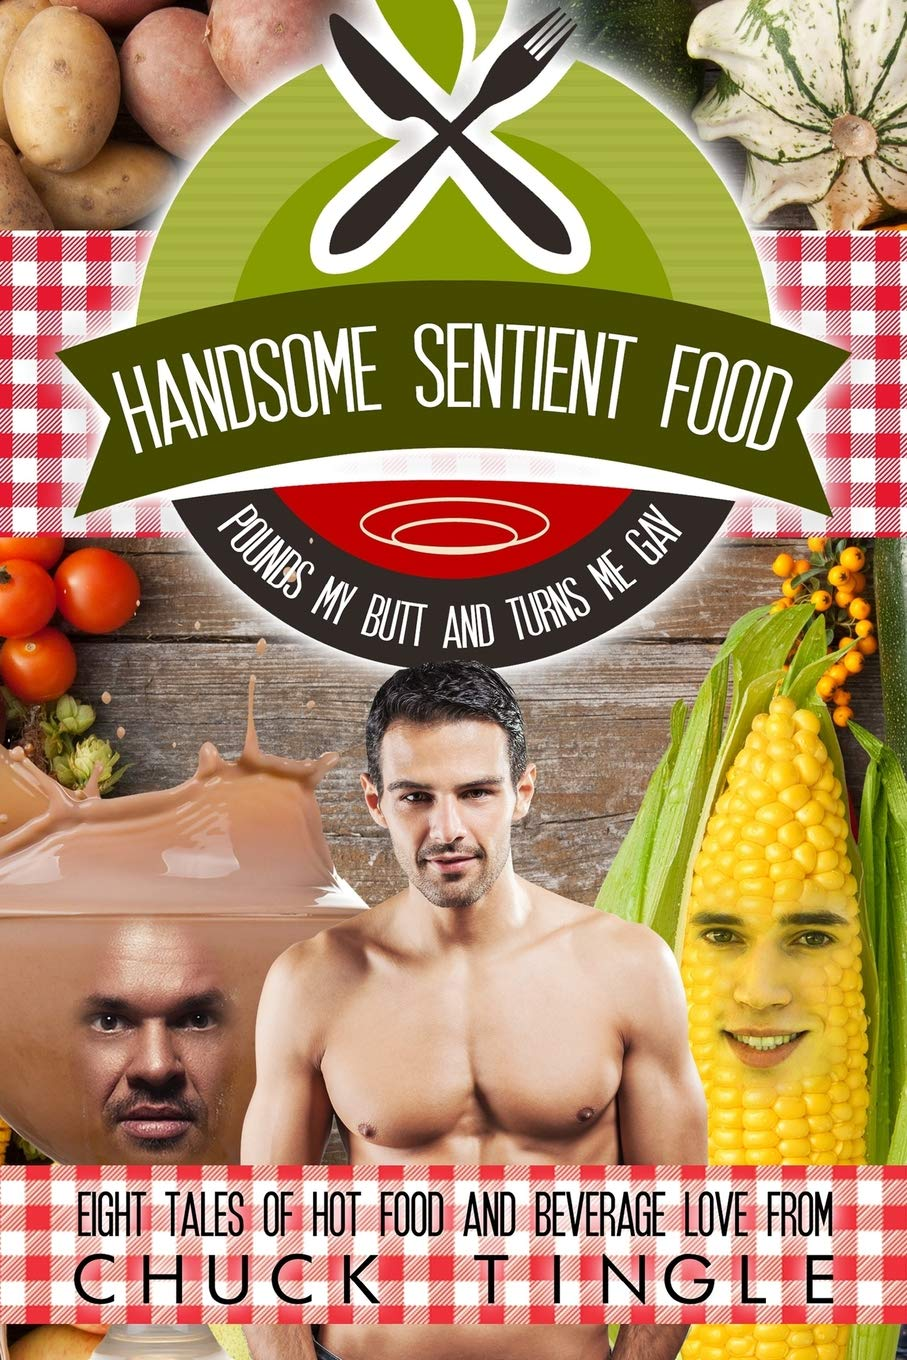 Amazon.com: Handsome Sentient Food Pounds My Butt And Turns Me Gay: Eight  Tales Of Hot Food (9781530213276): Dr. Chuck Tingle: Books